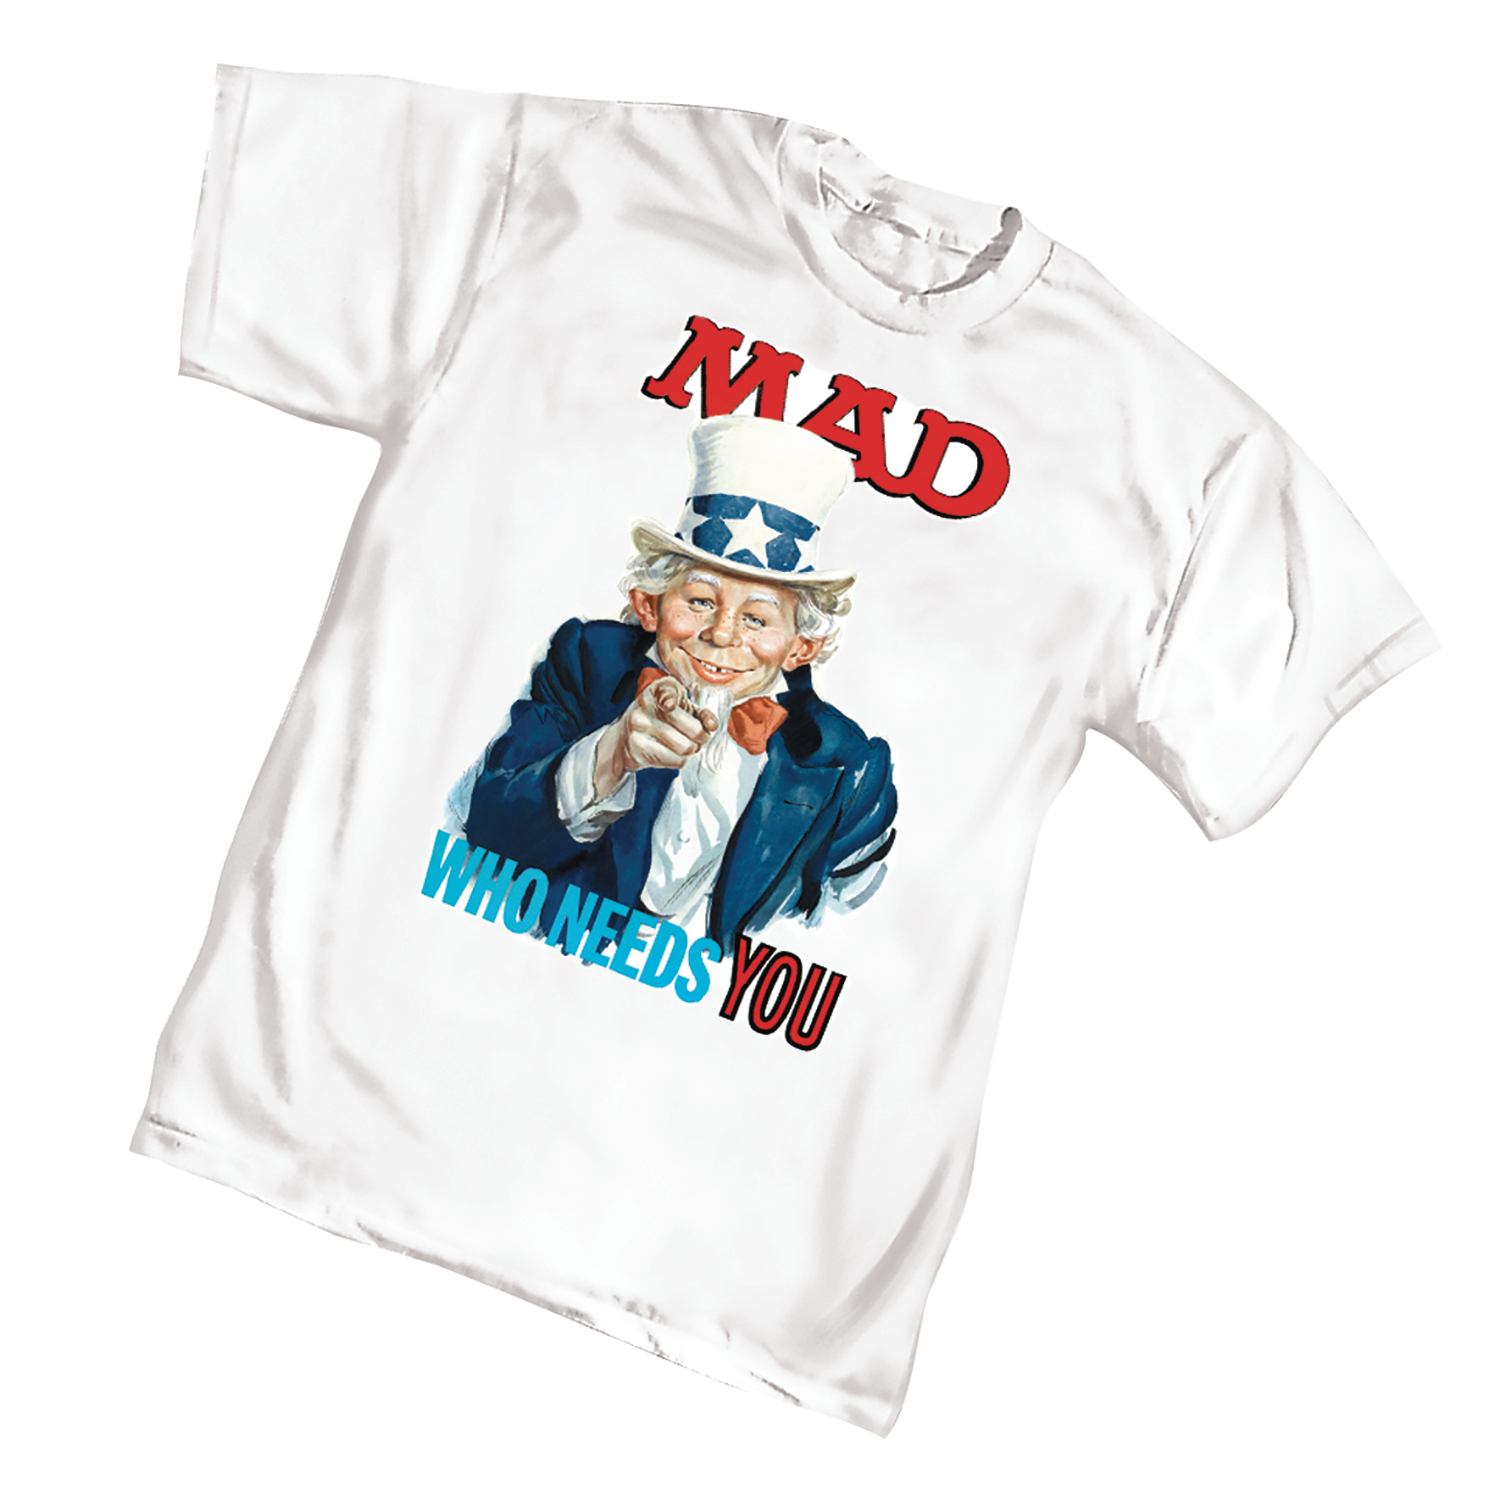 MAD NEEDS YOU T/S XL